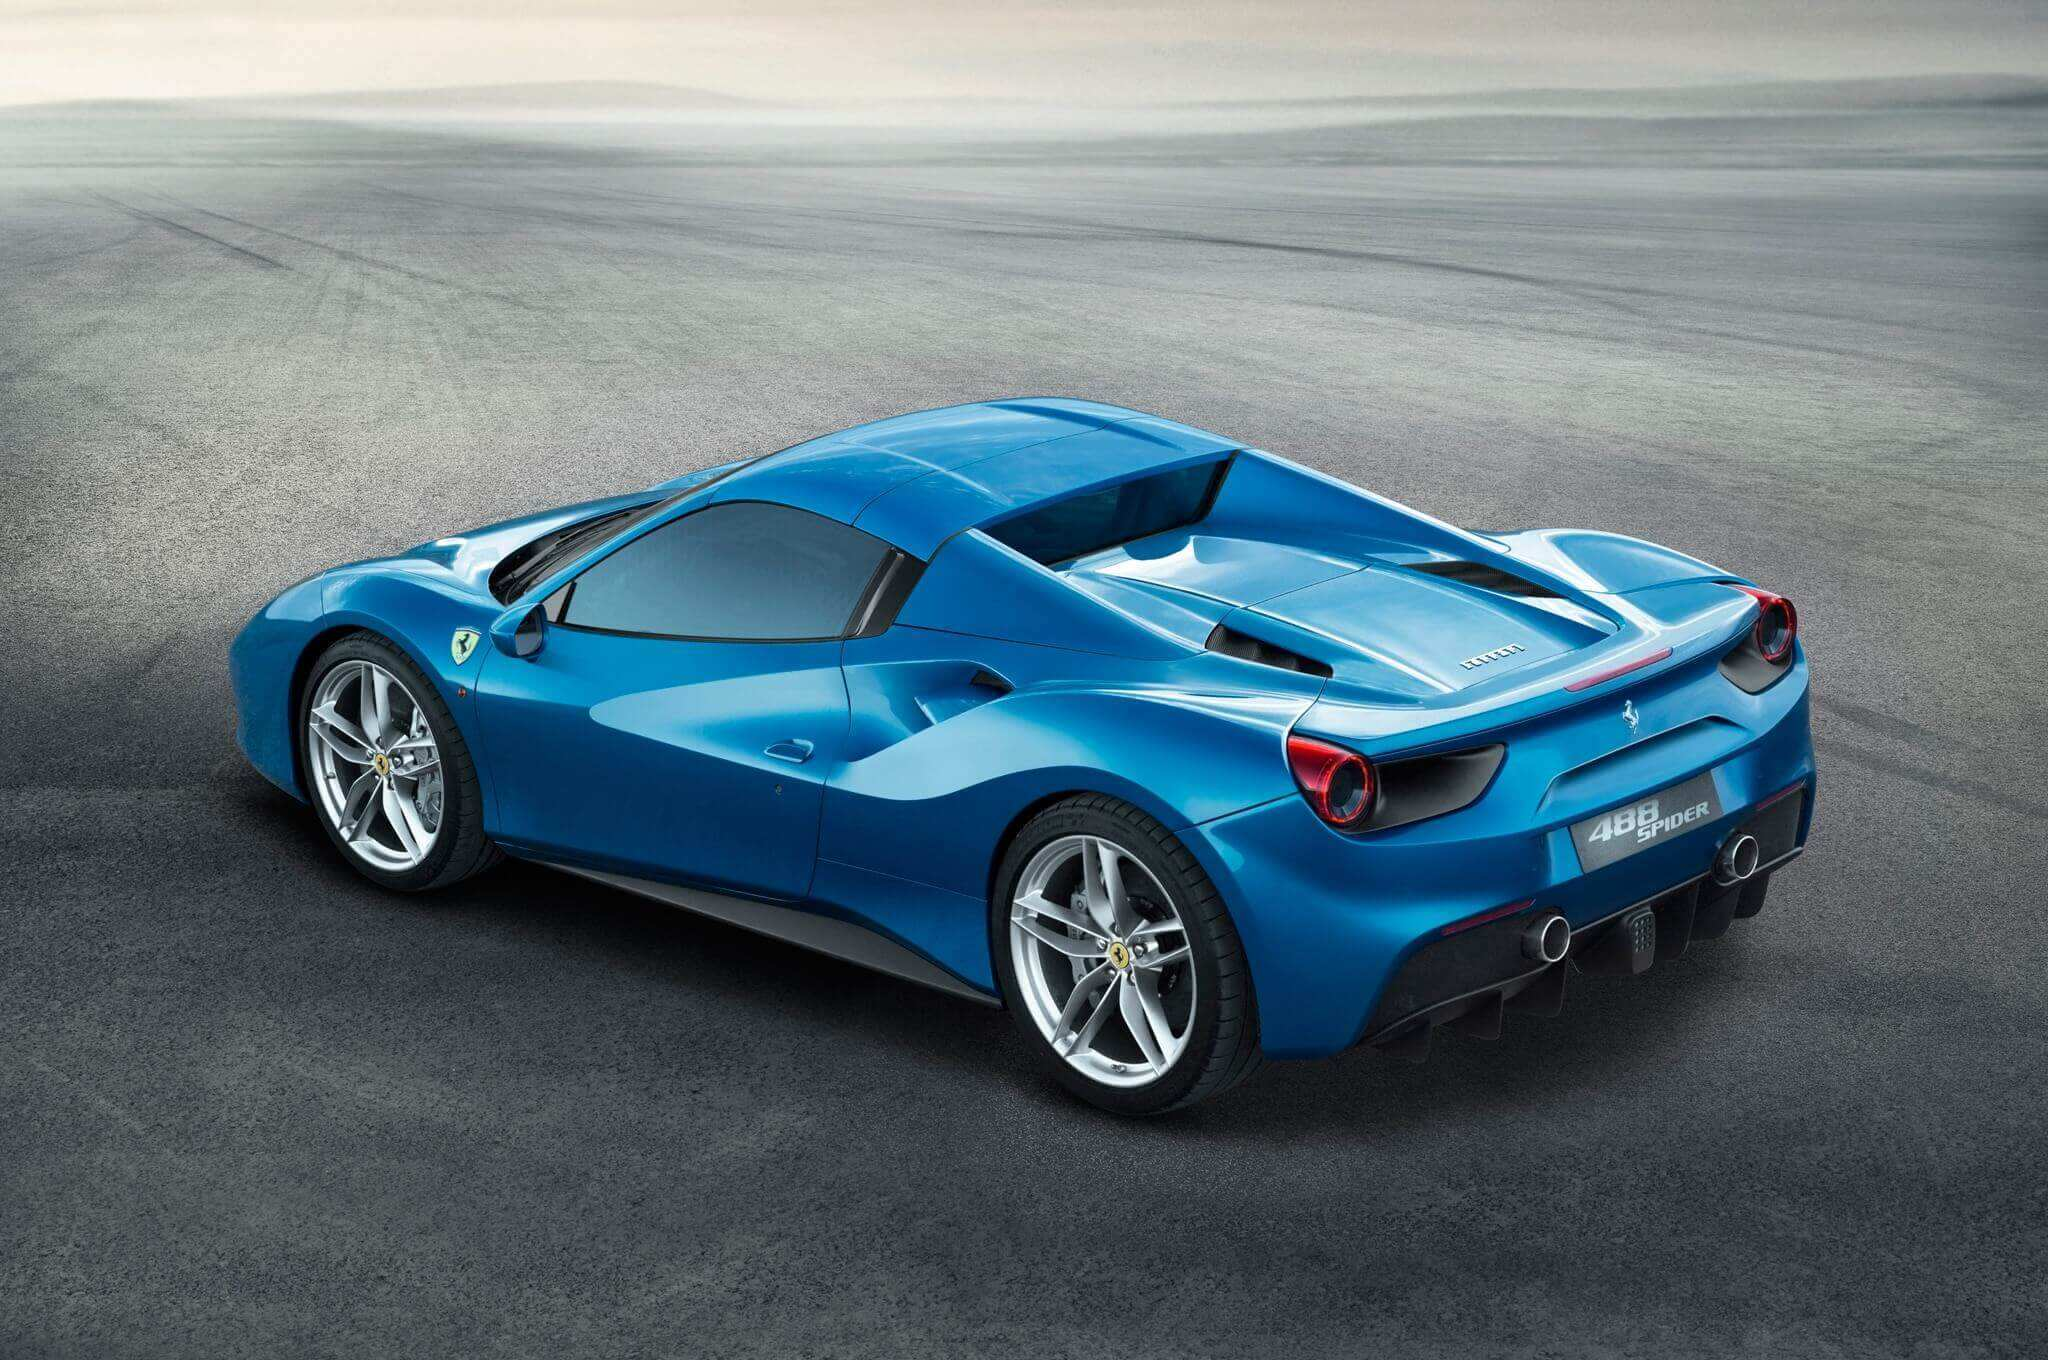 36 Great 2020 Ferrari 488 Spider For Sale Reviews for 2020 Ferrari 488 Spider For Sale